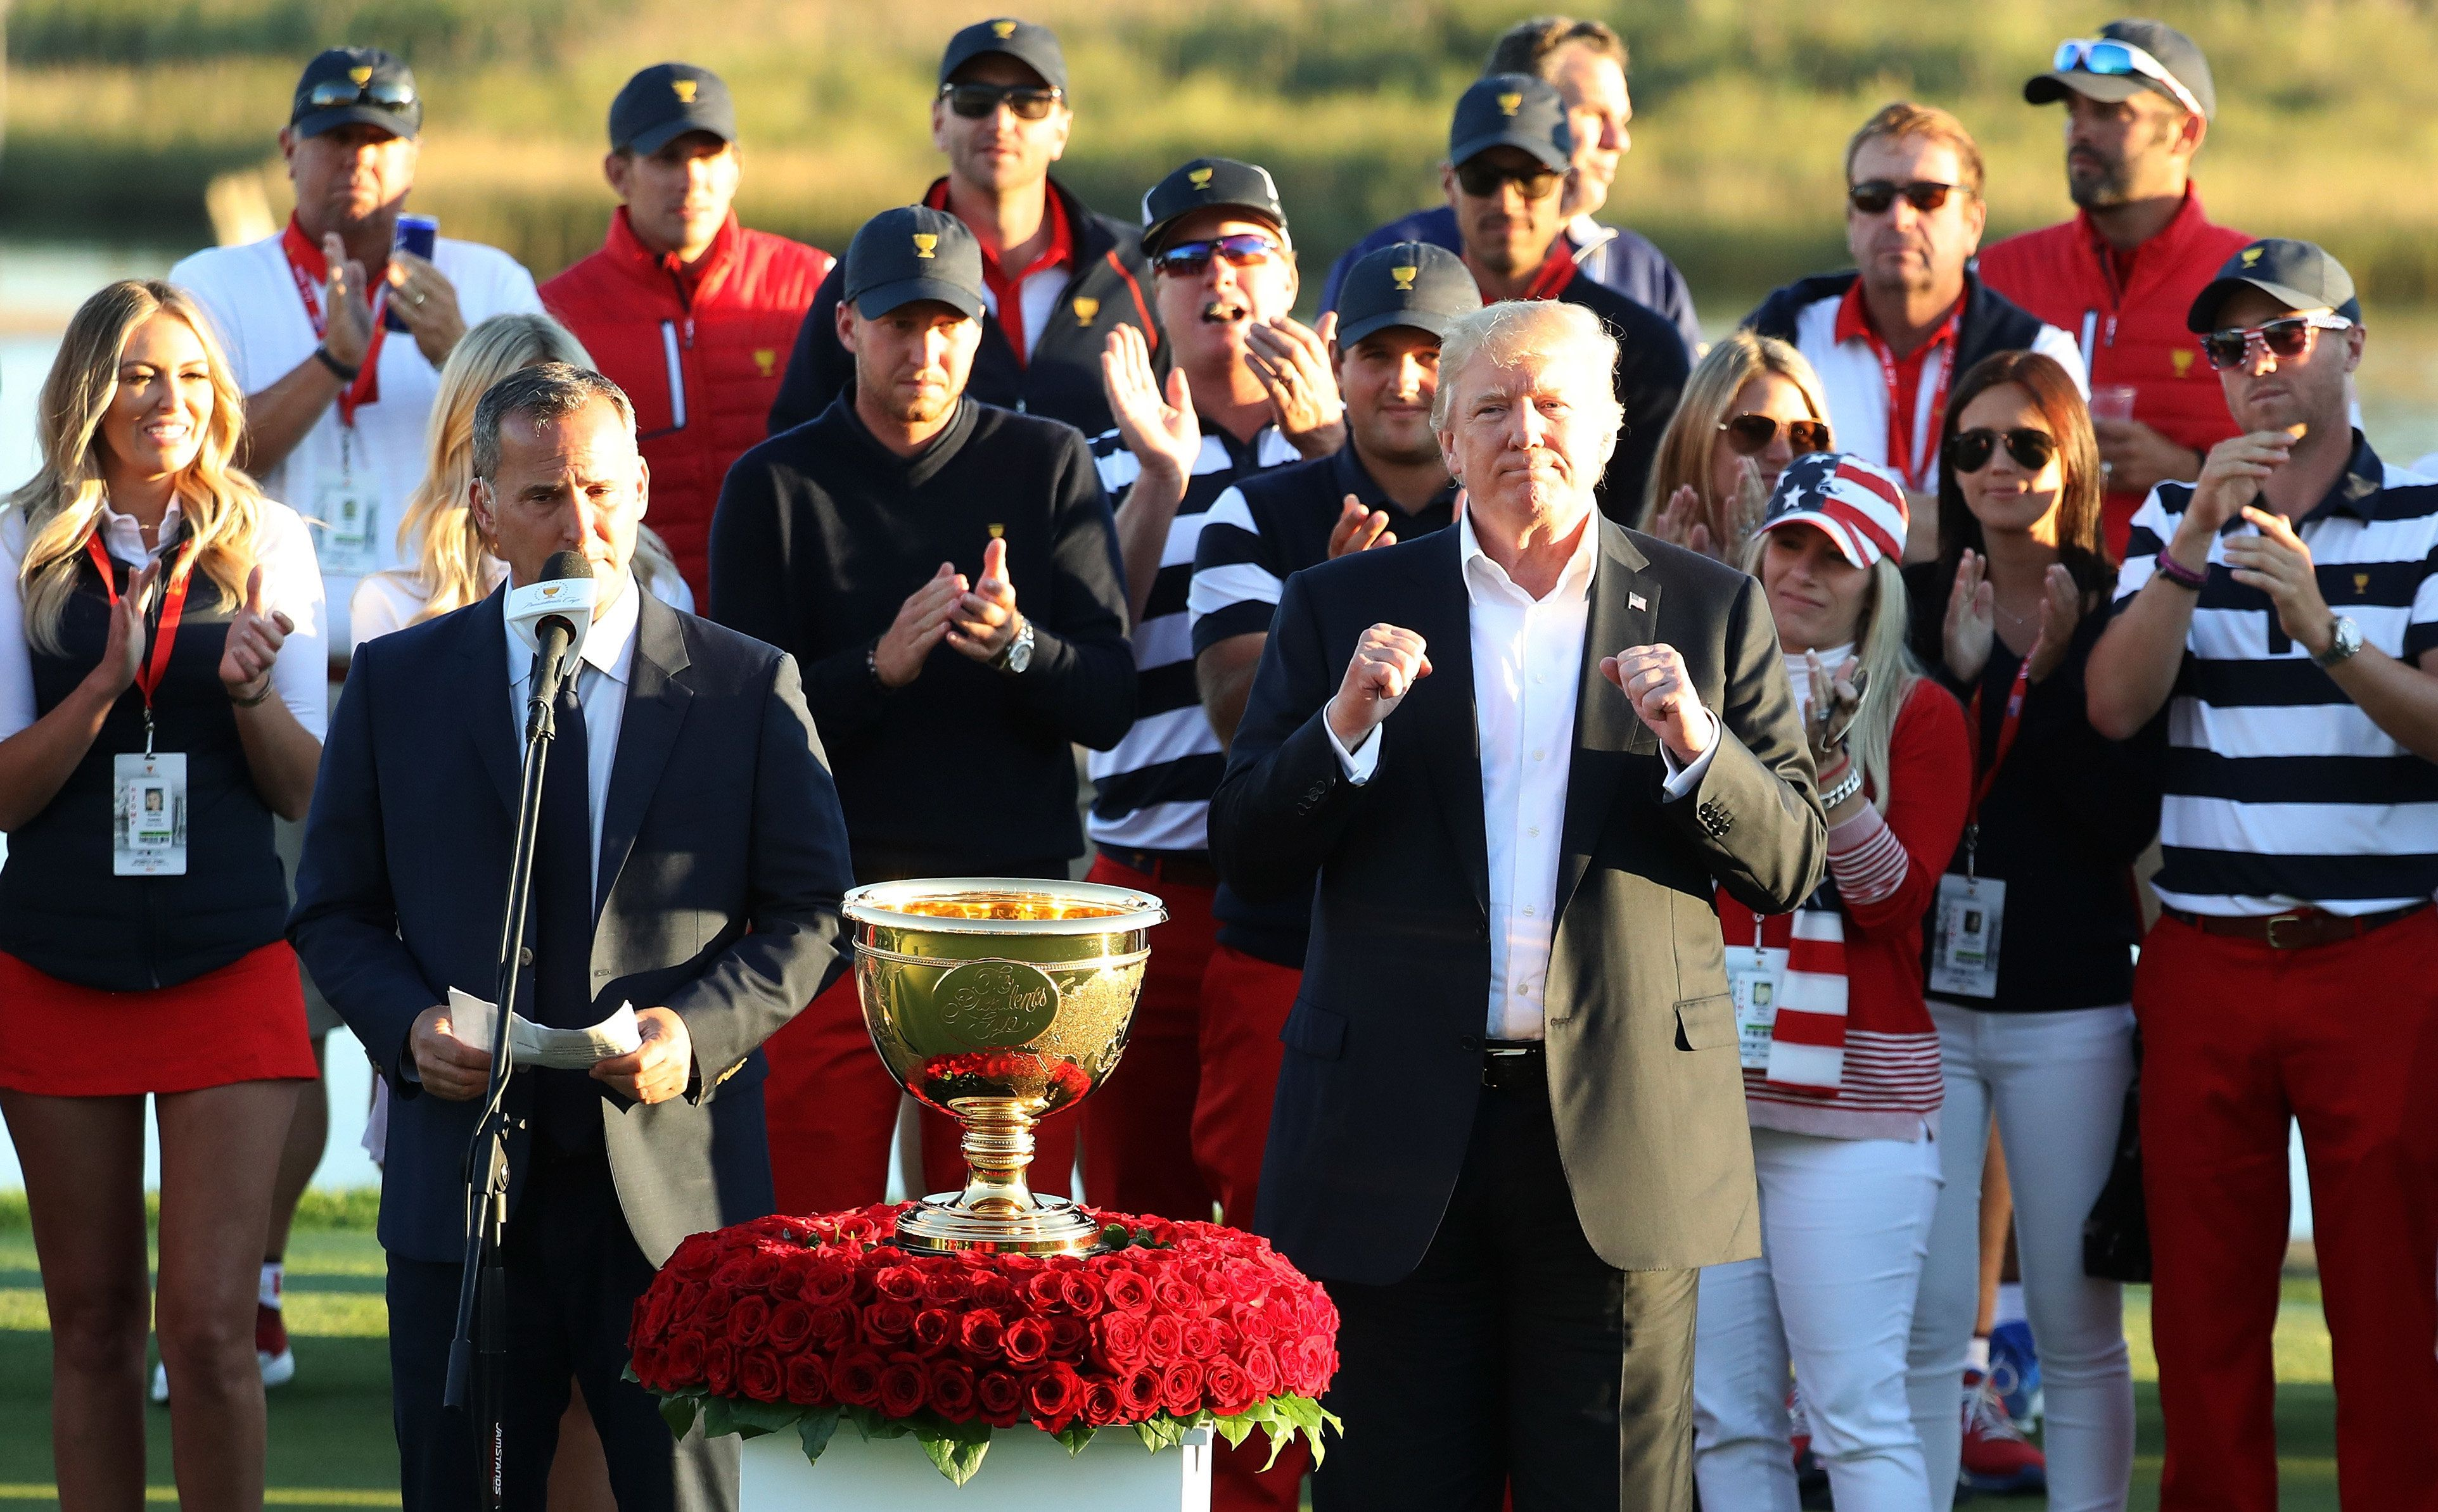 President Donald Trump presented the U.S. team with the trophy after they defeated the international...